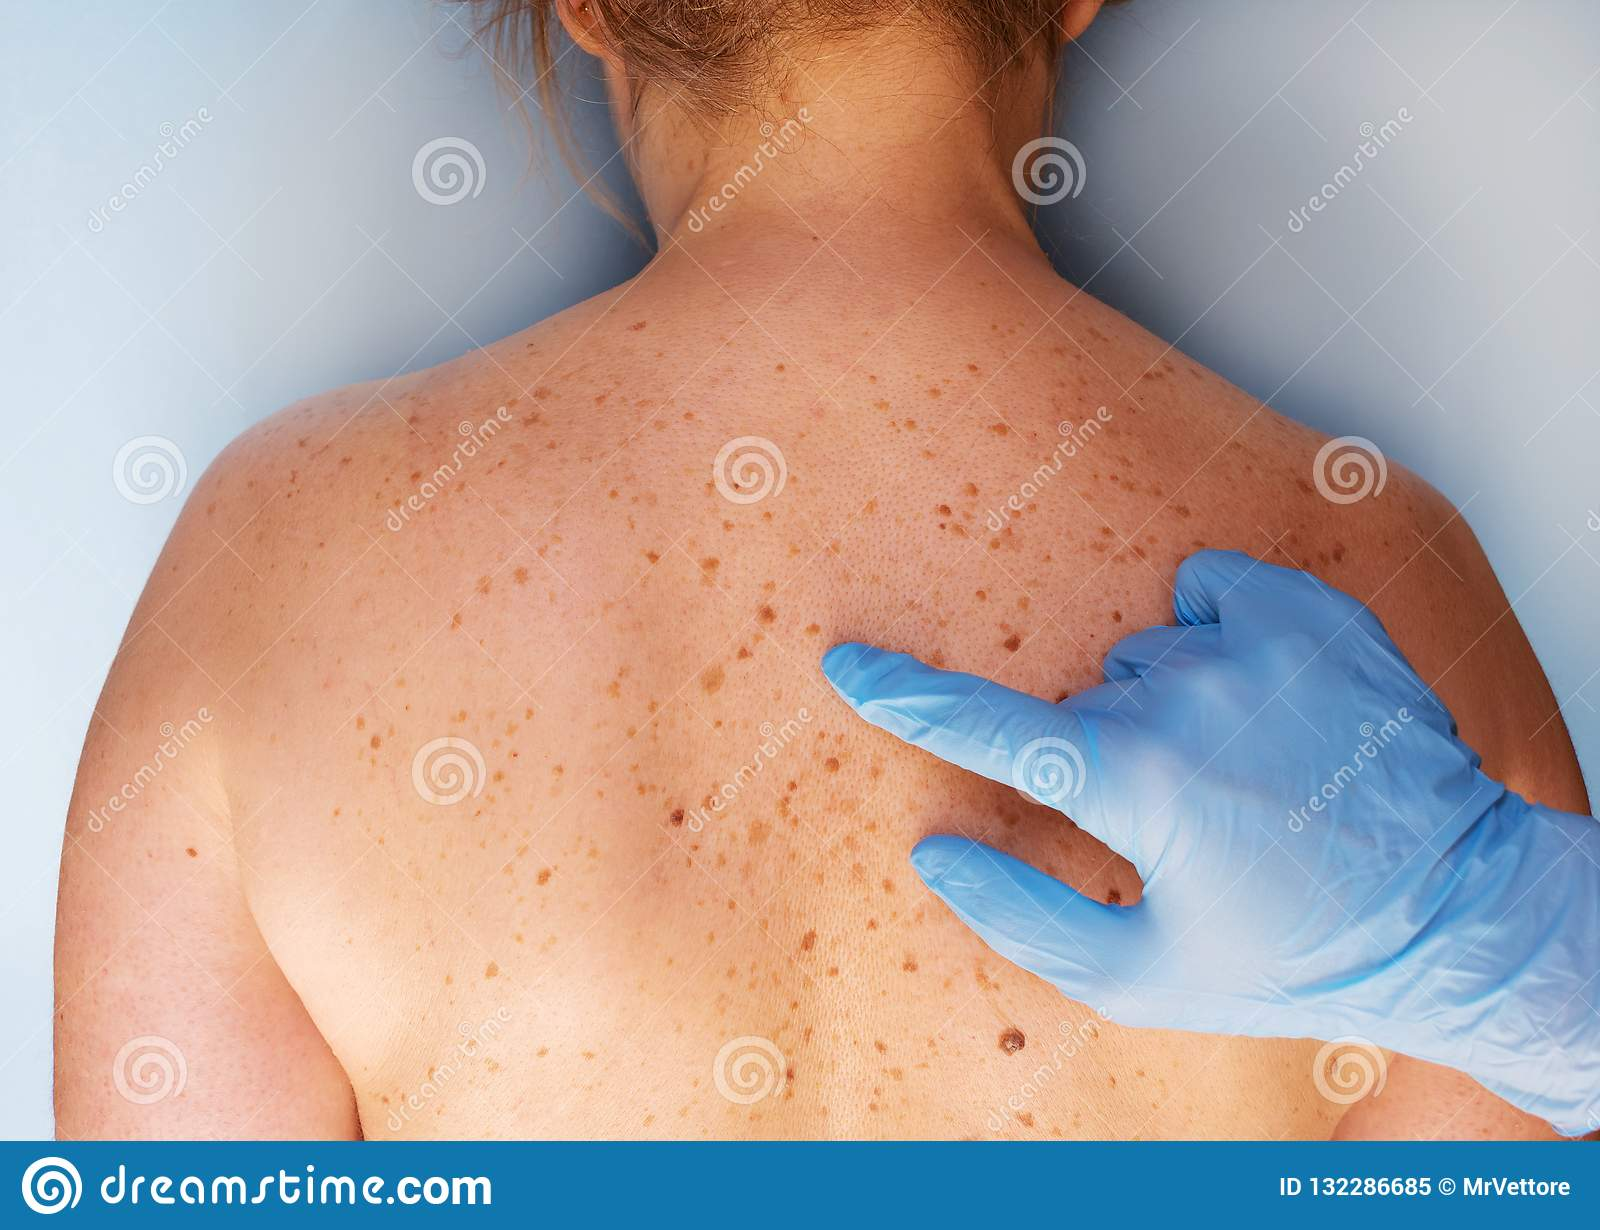 Dermatologist examining the patient in the clinic. Problem skin with a mole on the back. Closeup view.